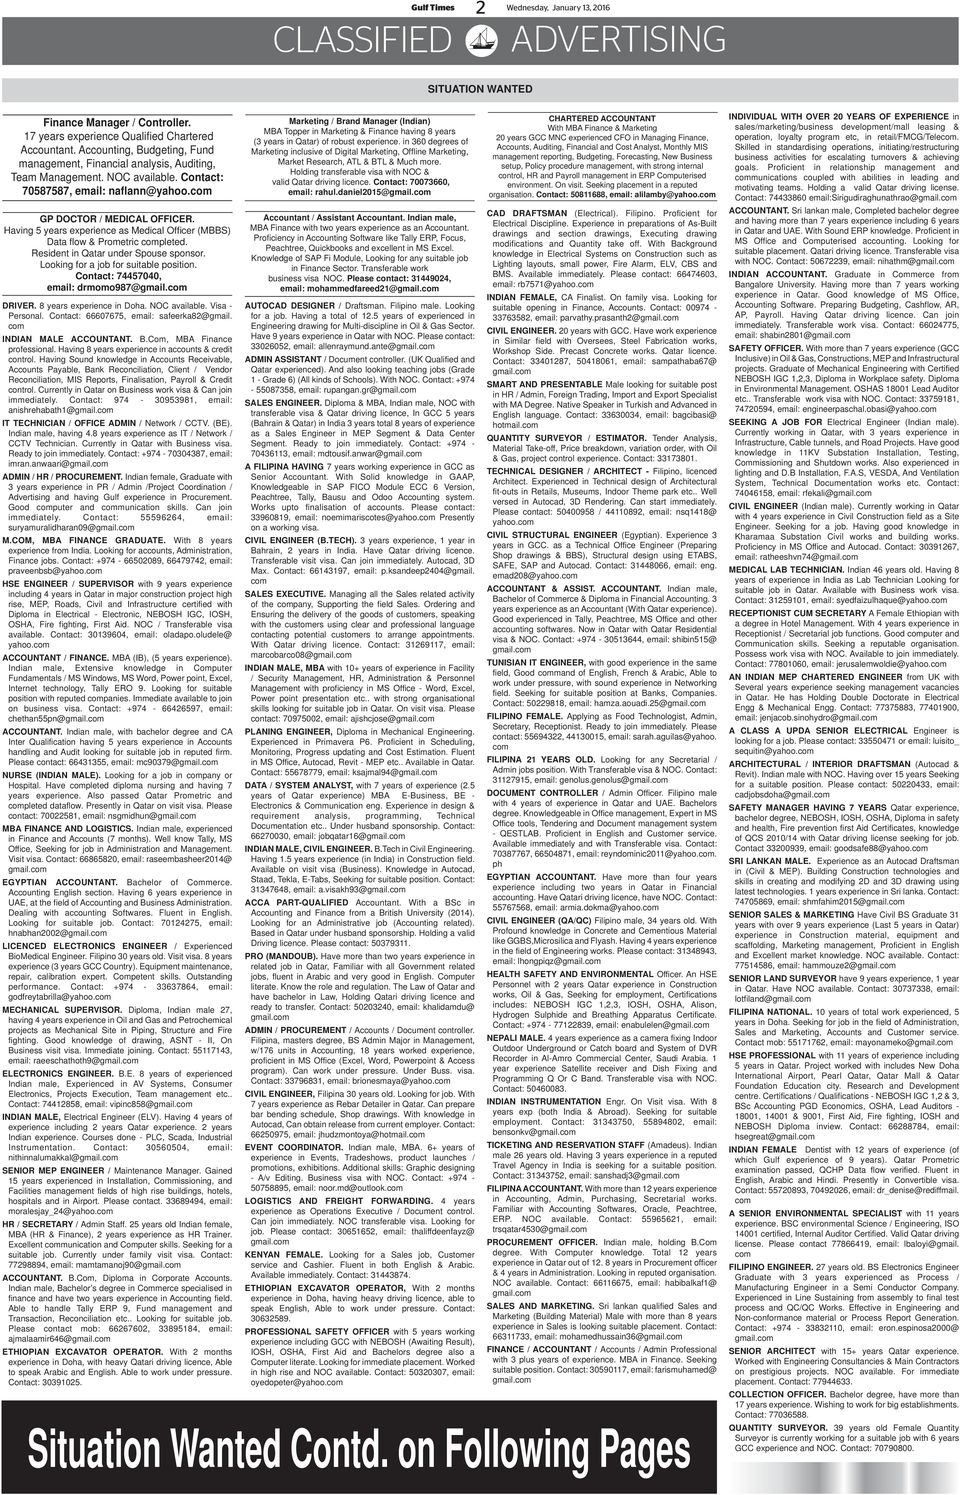 Gulf Times SITUATION VACANT REQUIRED - PDF